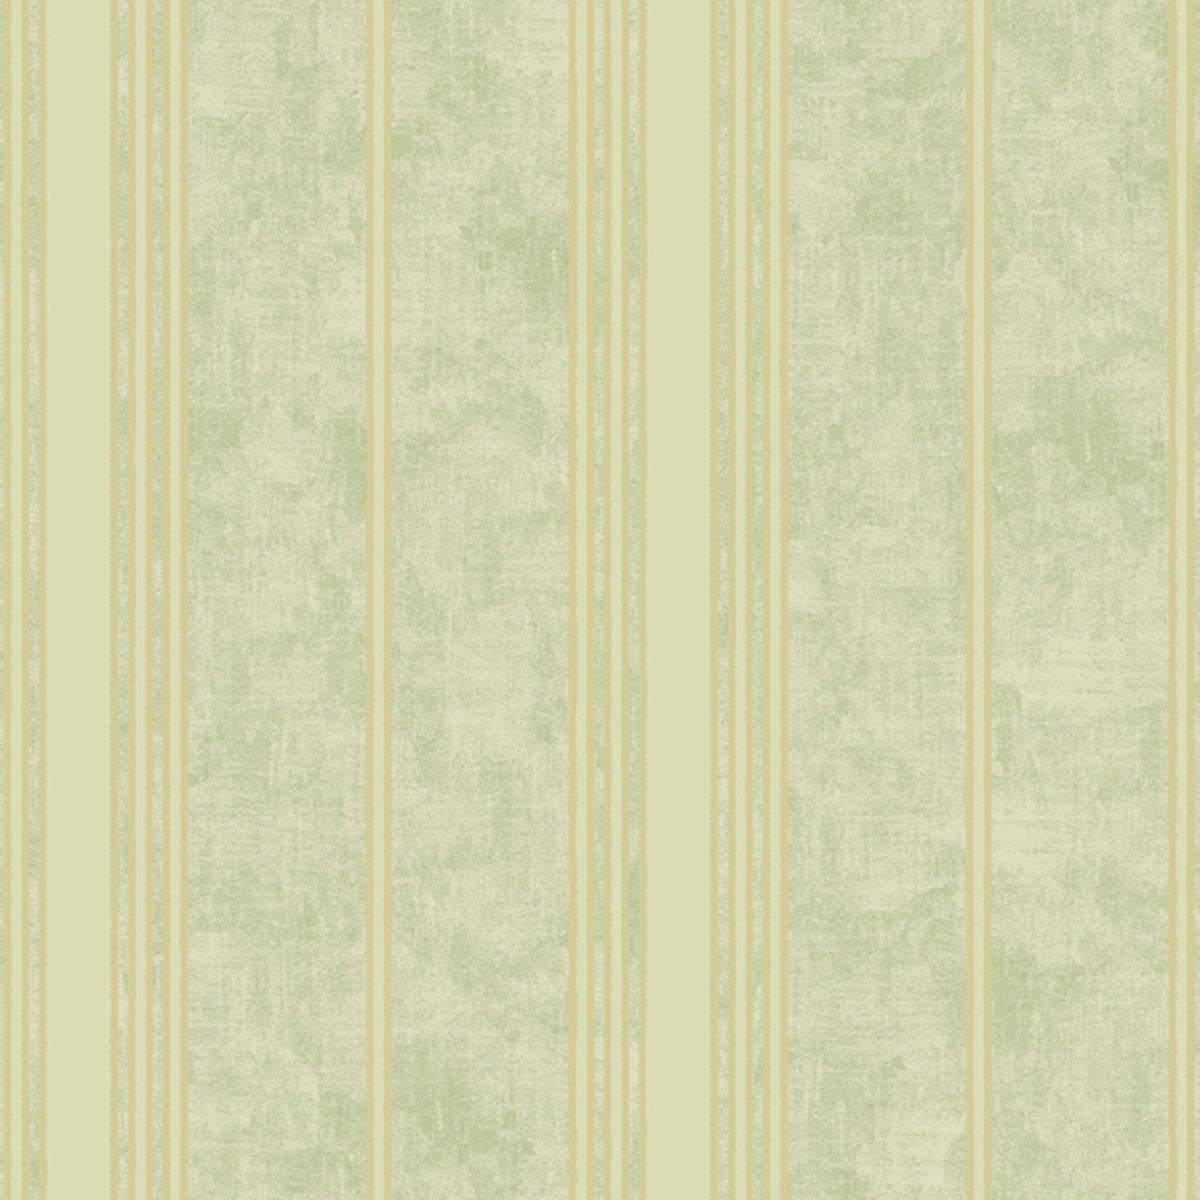 Mixed Metals Channel Stripe Wallpaper in Yellow/gold